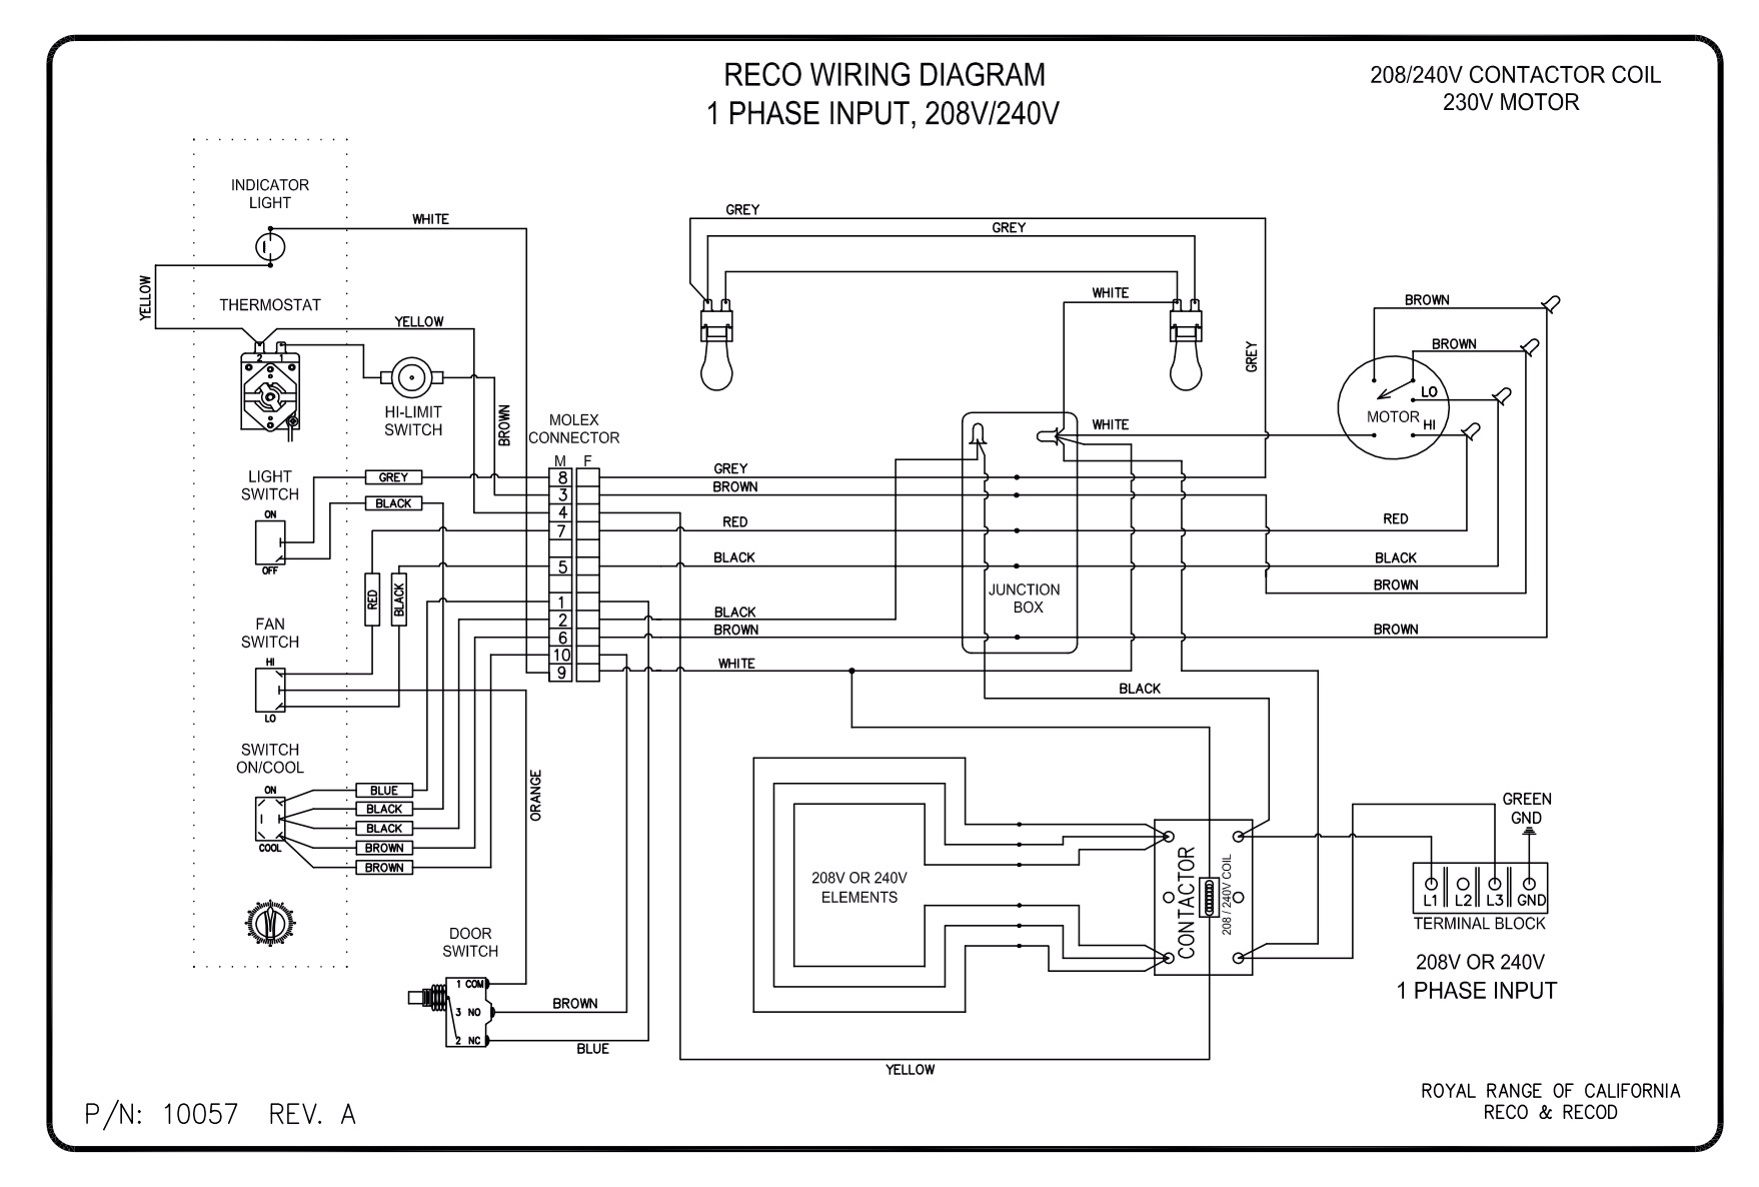 wiring diagrams royal range of california 480 Volt Lighting Wiring Diagram Royal 120 Volt Motor Wiring Diagram #3